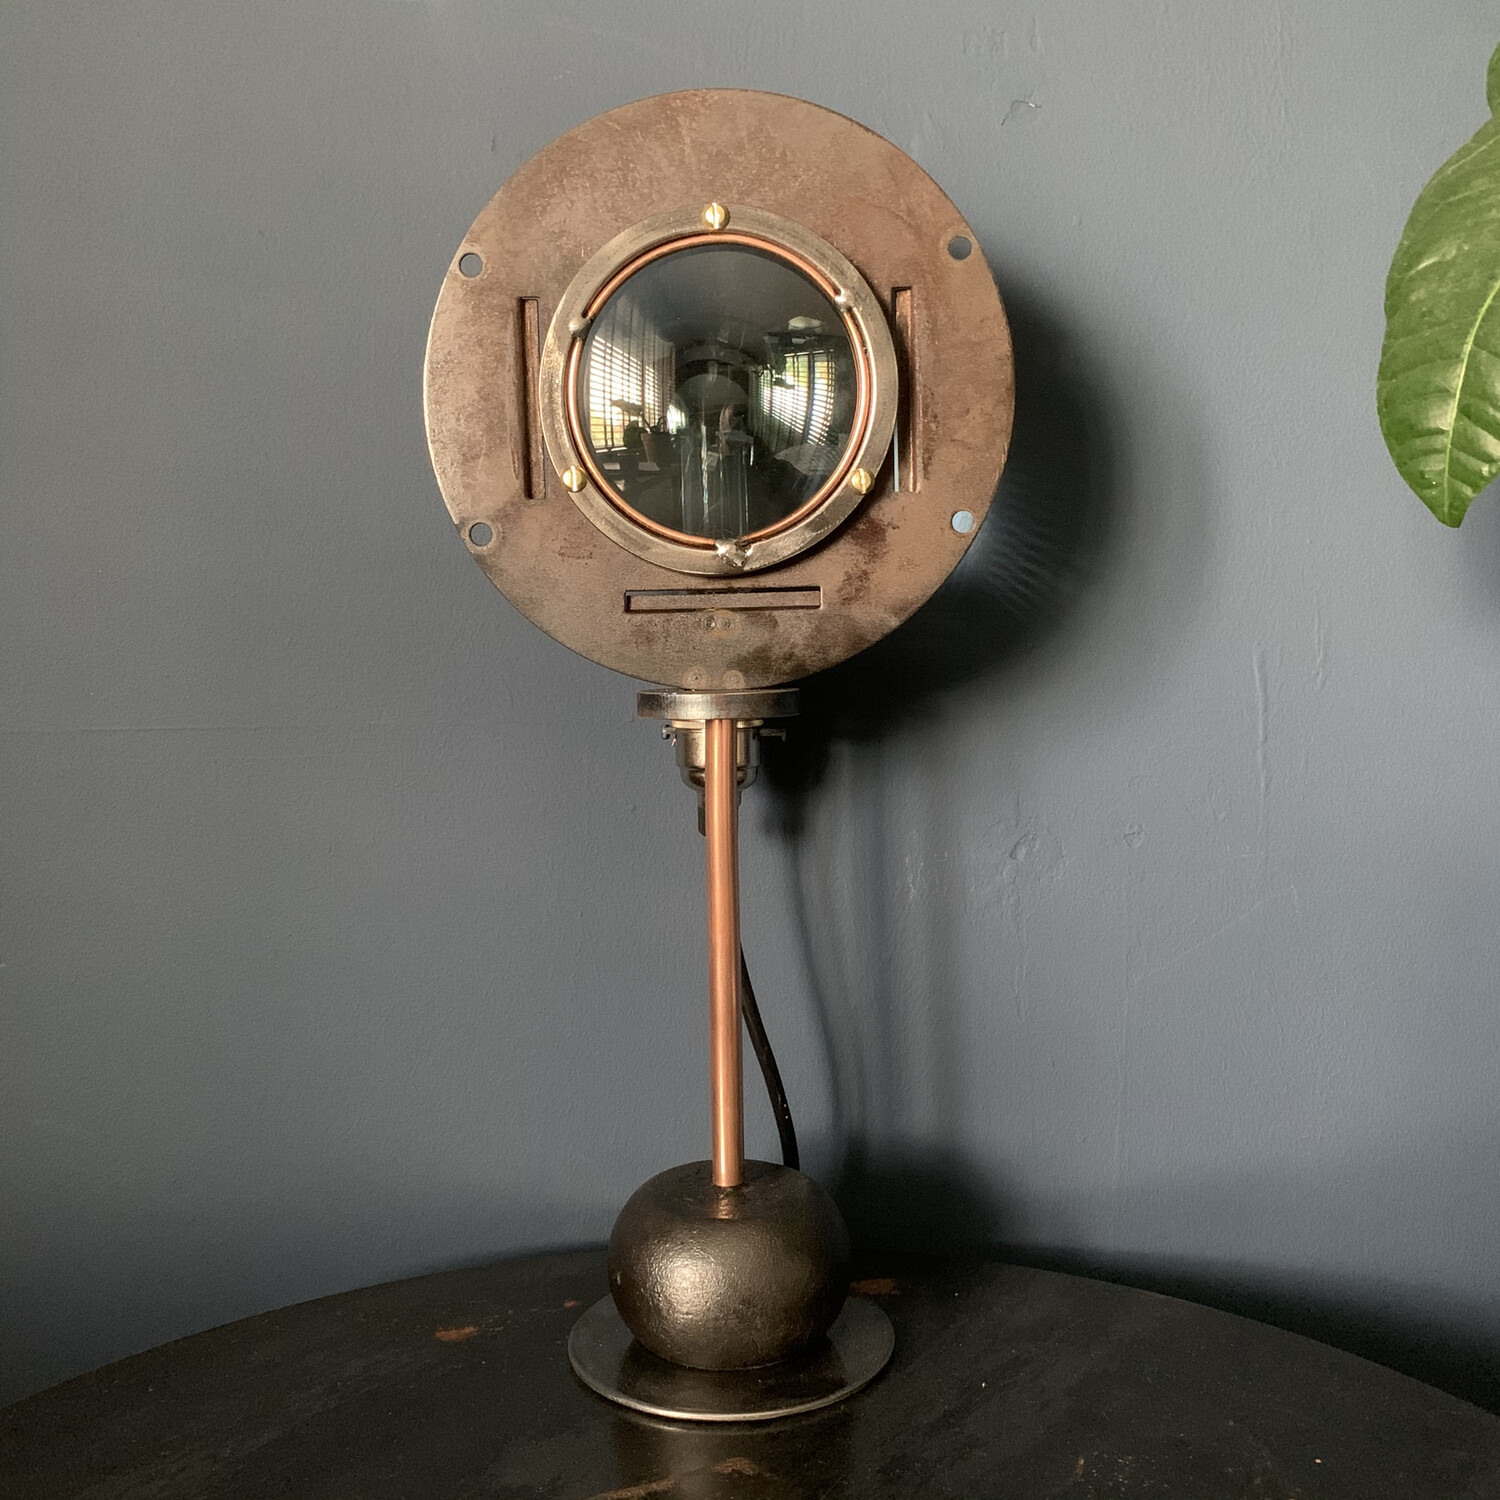 Vintage Lens Set In A Bespoke Steel And Copper Lamp Stand